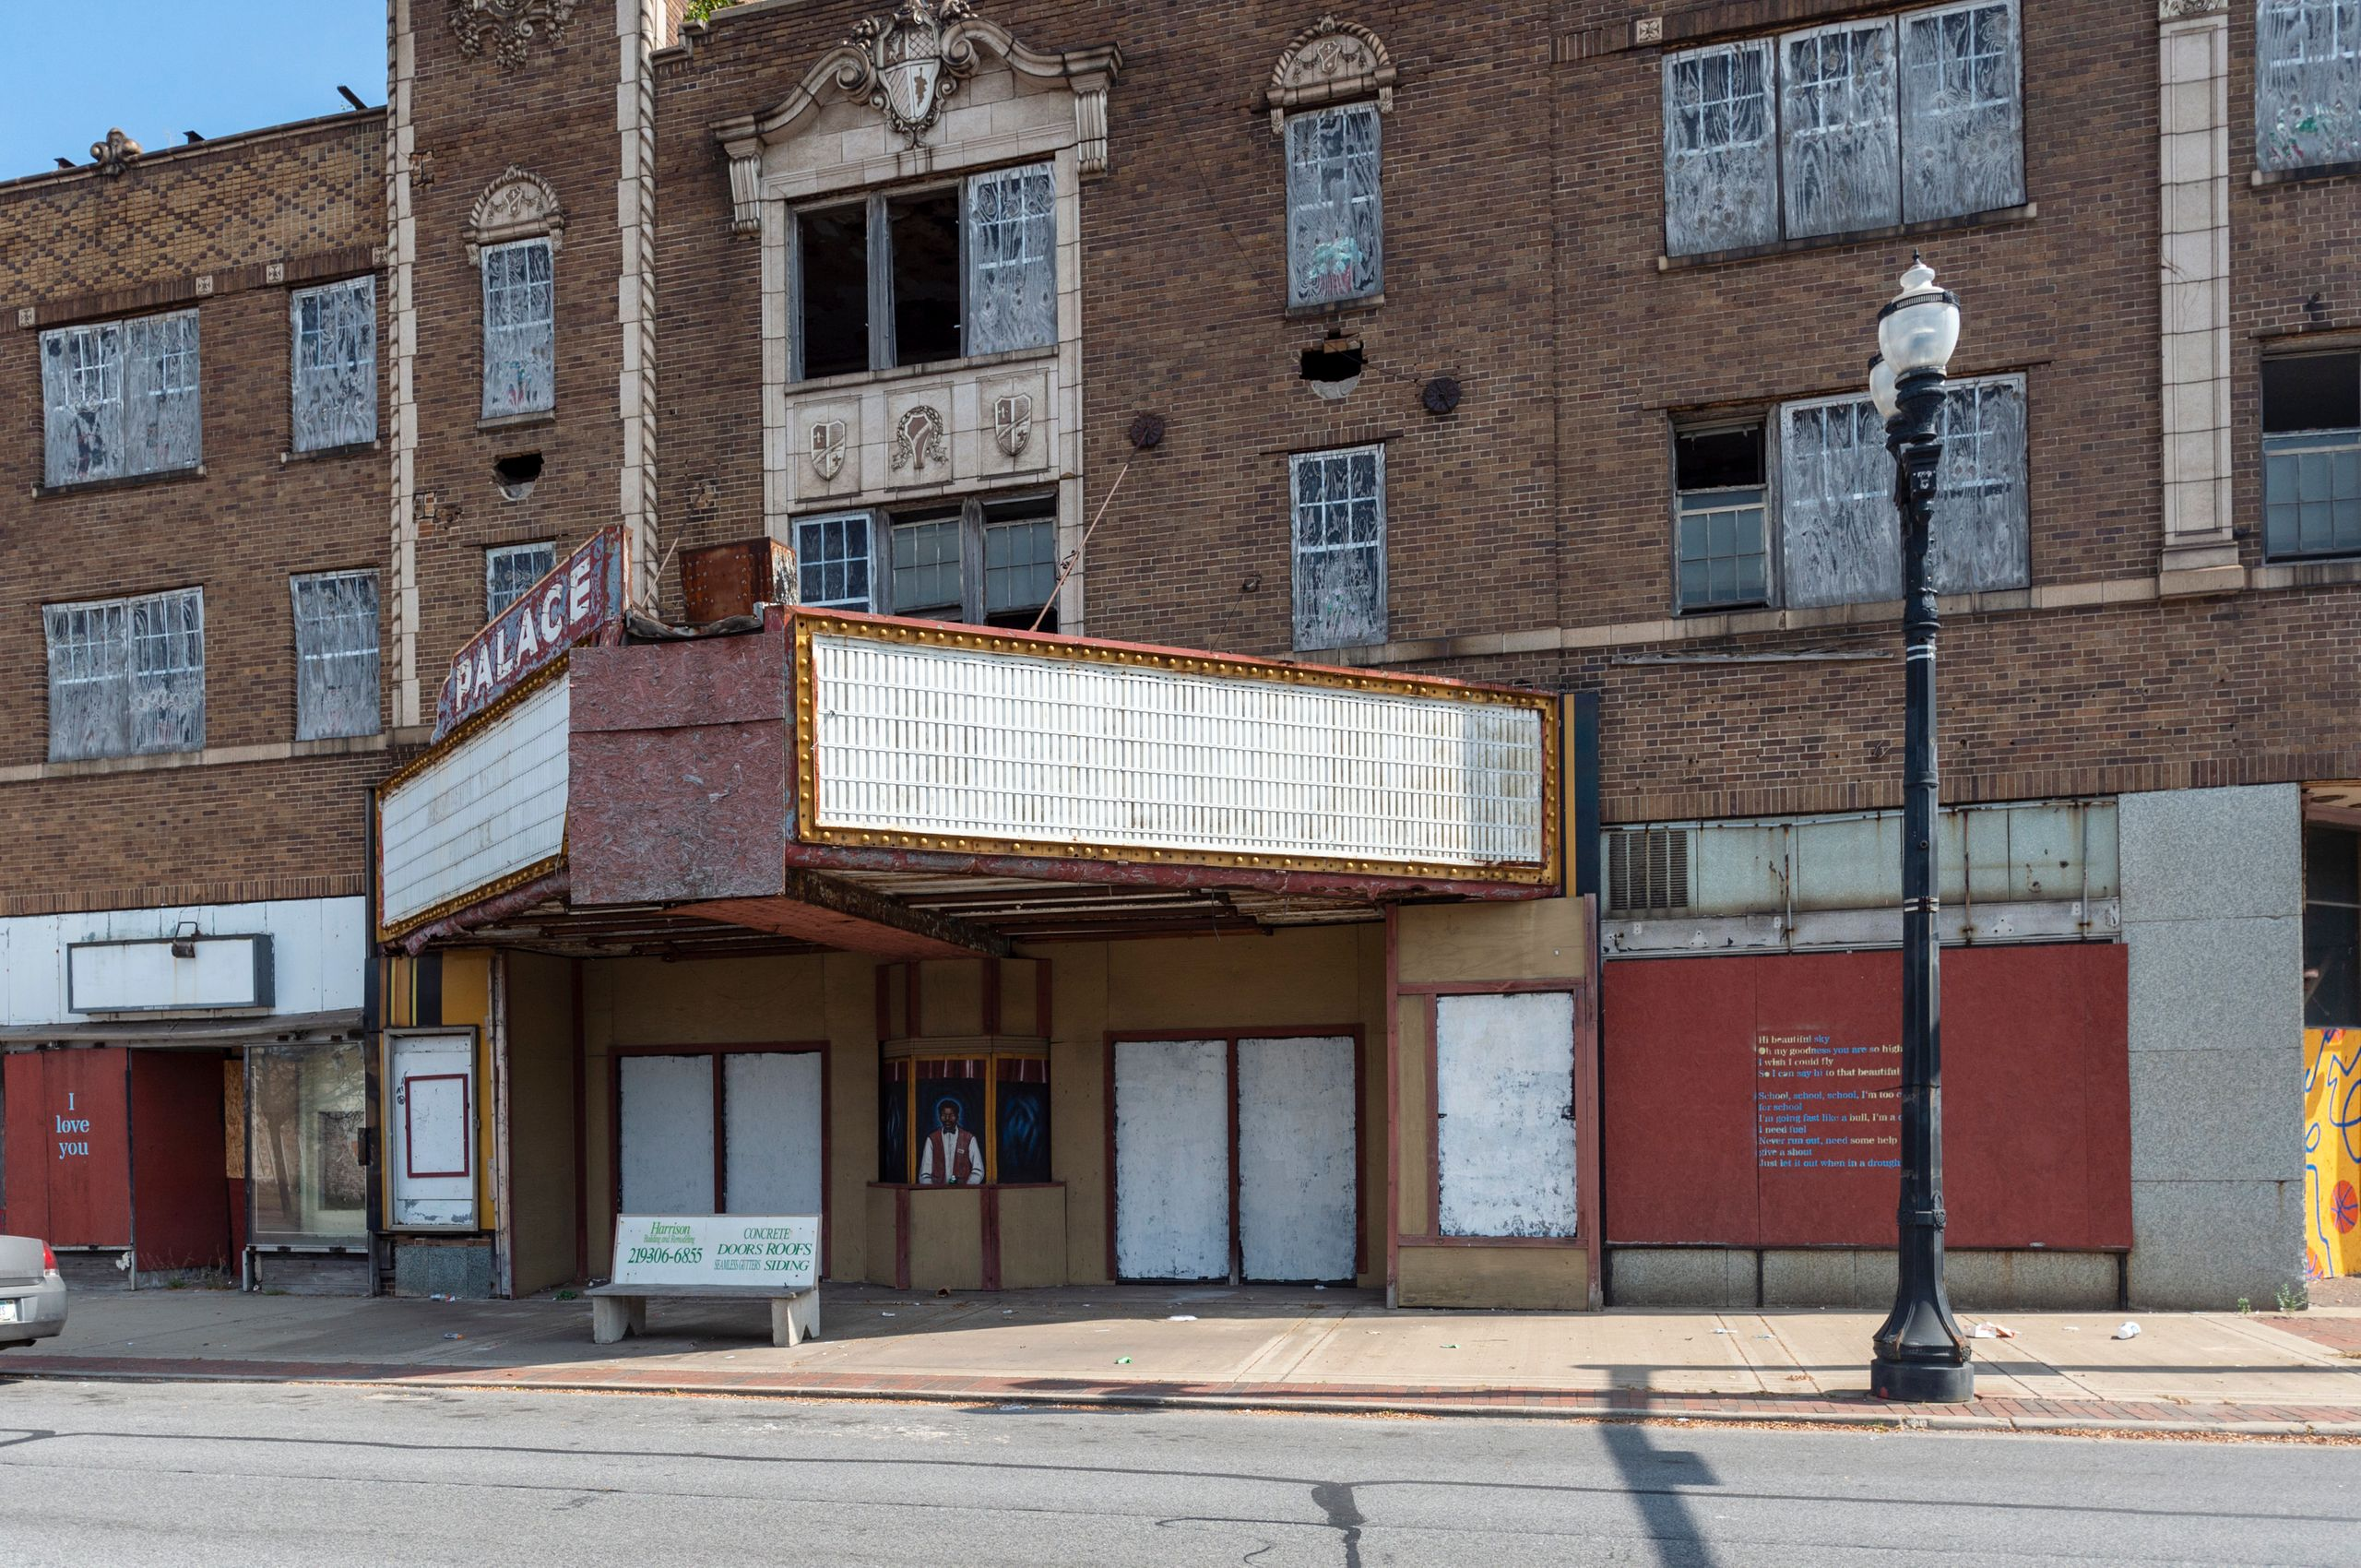 The Palace Theater in downtown Gary has been closed as the building falls into disrepair.